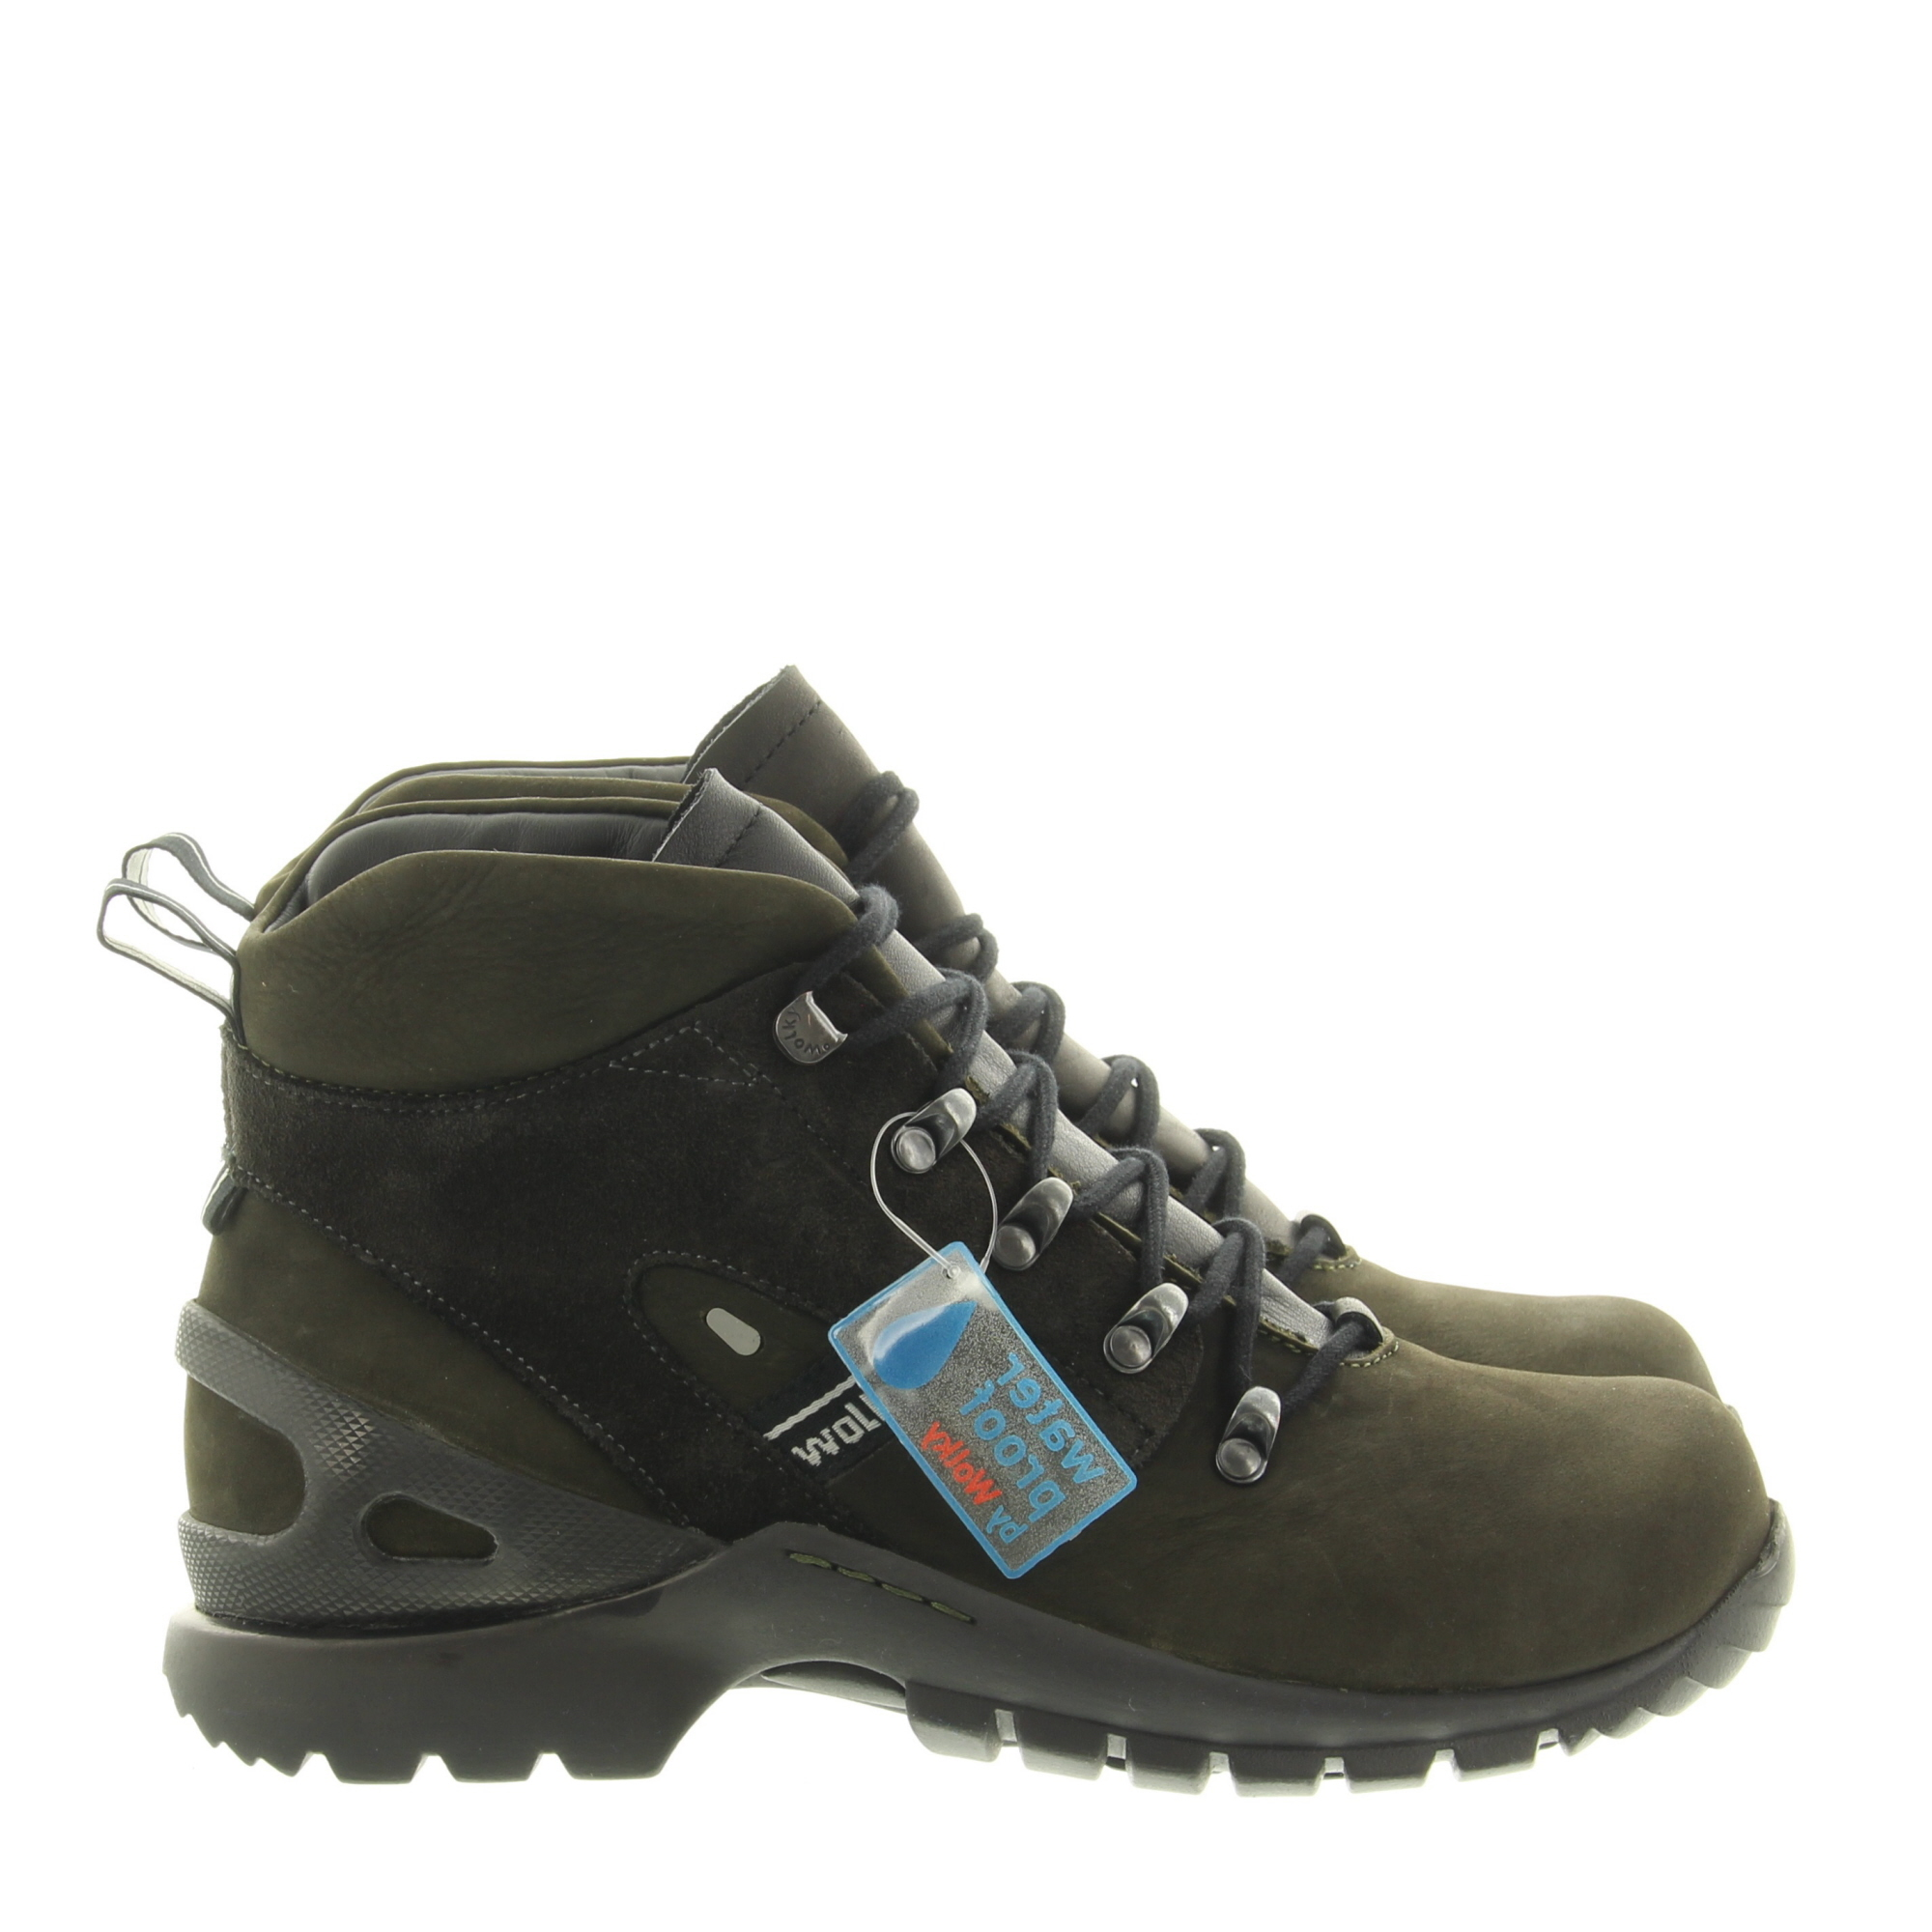 Wolky 0650516 Traction WP 770 Cactus Oiled nubuck